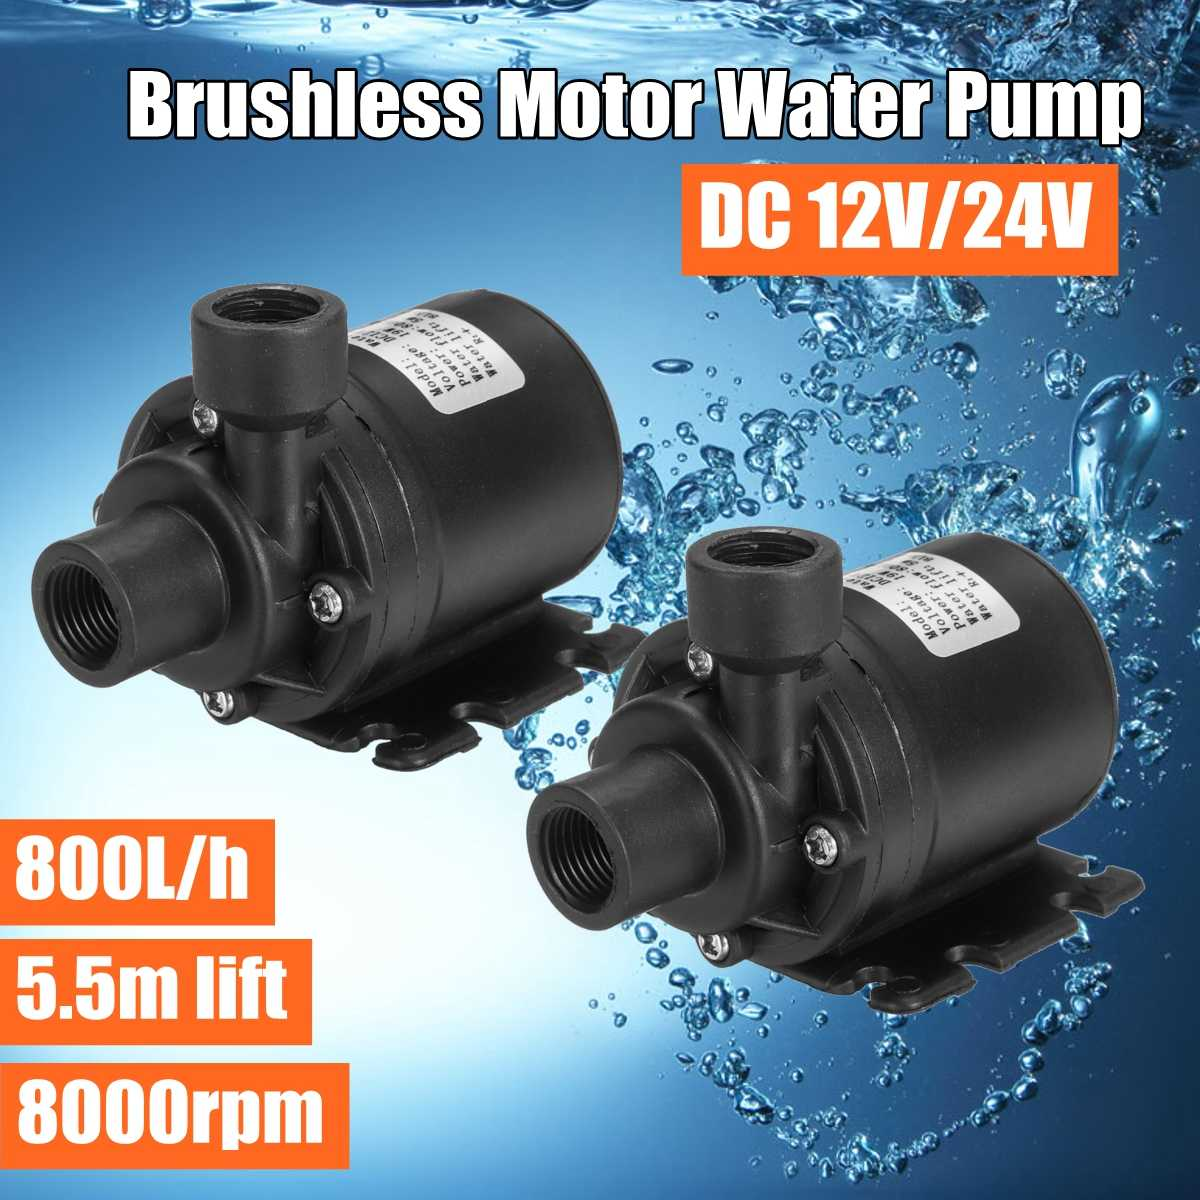 ZYW680 800L/h Mini DC 12V 24V 19W Water Pump 8000rpm 5.5m Lift Brushless Motor Ultra Quiet Submersible Pump For Cooling System